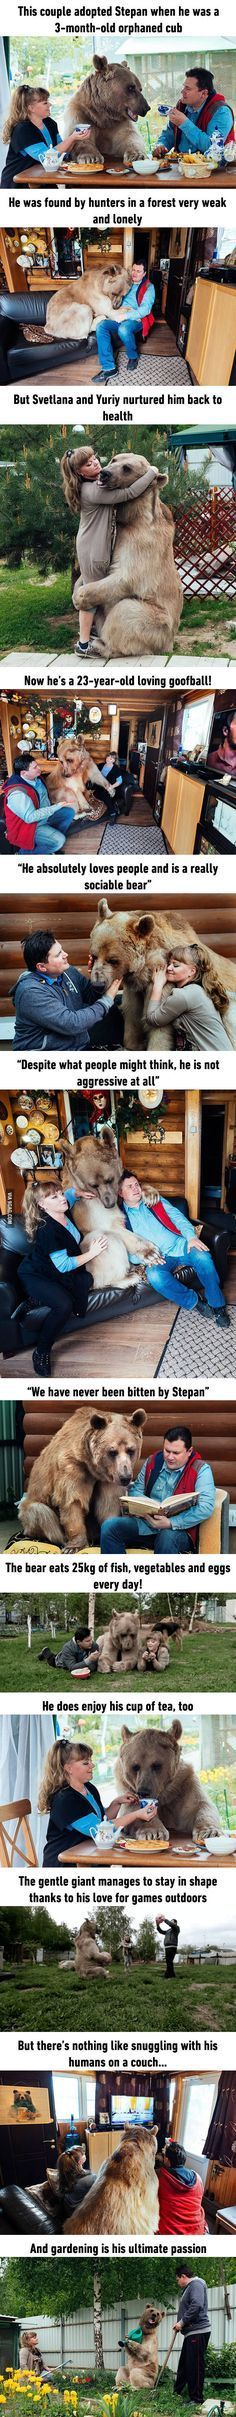 Russian Couple Adopted An Orphaned Bear 23 Years Ago, And They Are Still Living Happily Together 9gag.com/